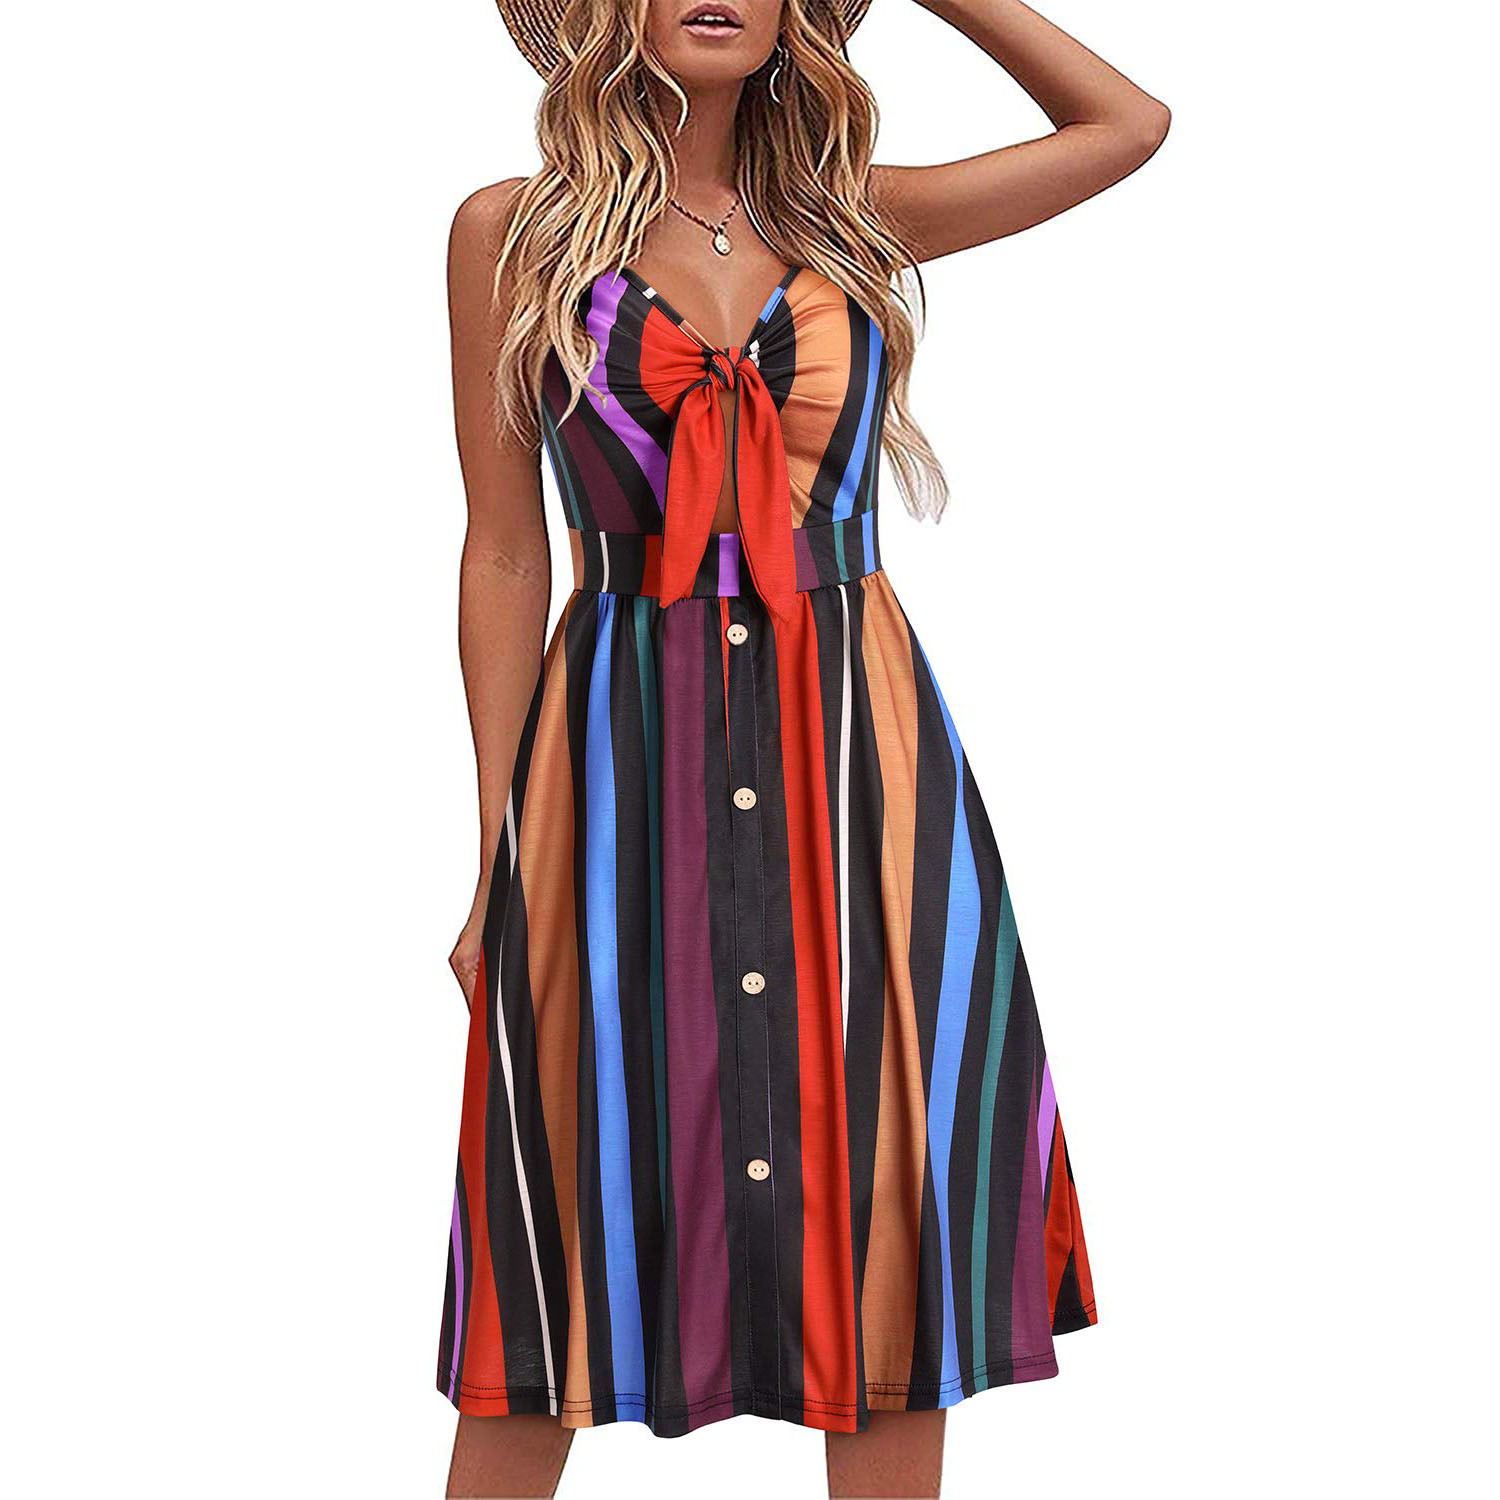 Womens Floral Sundress V Neck Tie Knot Front Spaghetti Strap Summer Dresses with Pockets